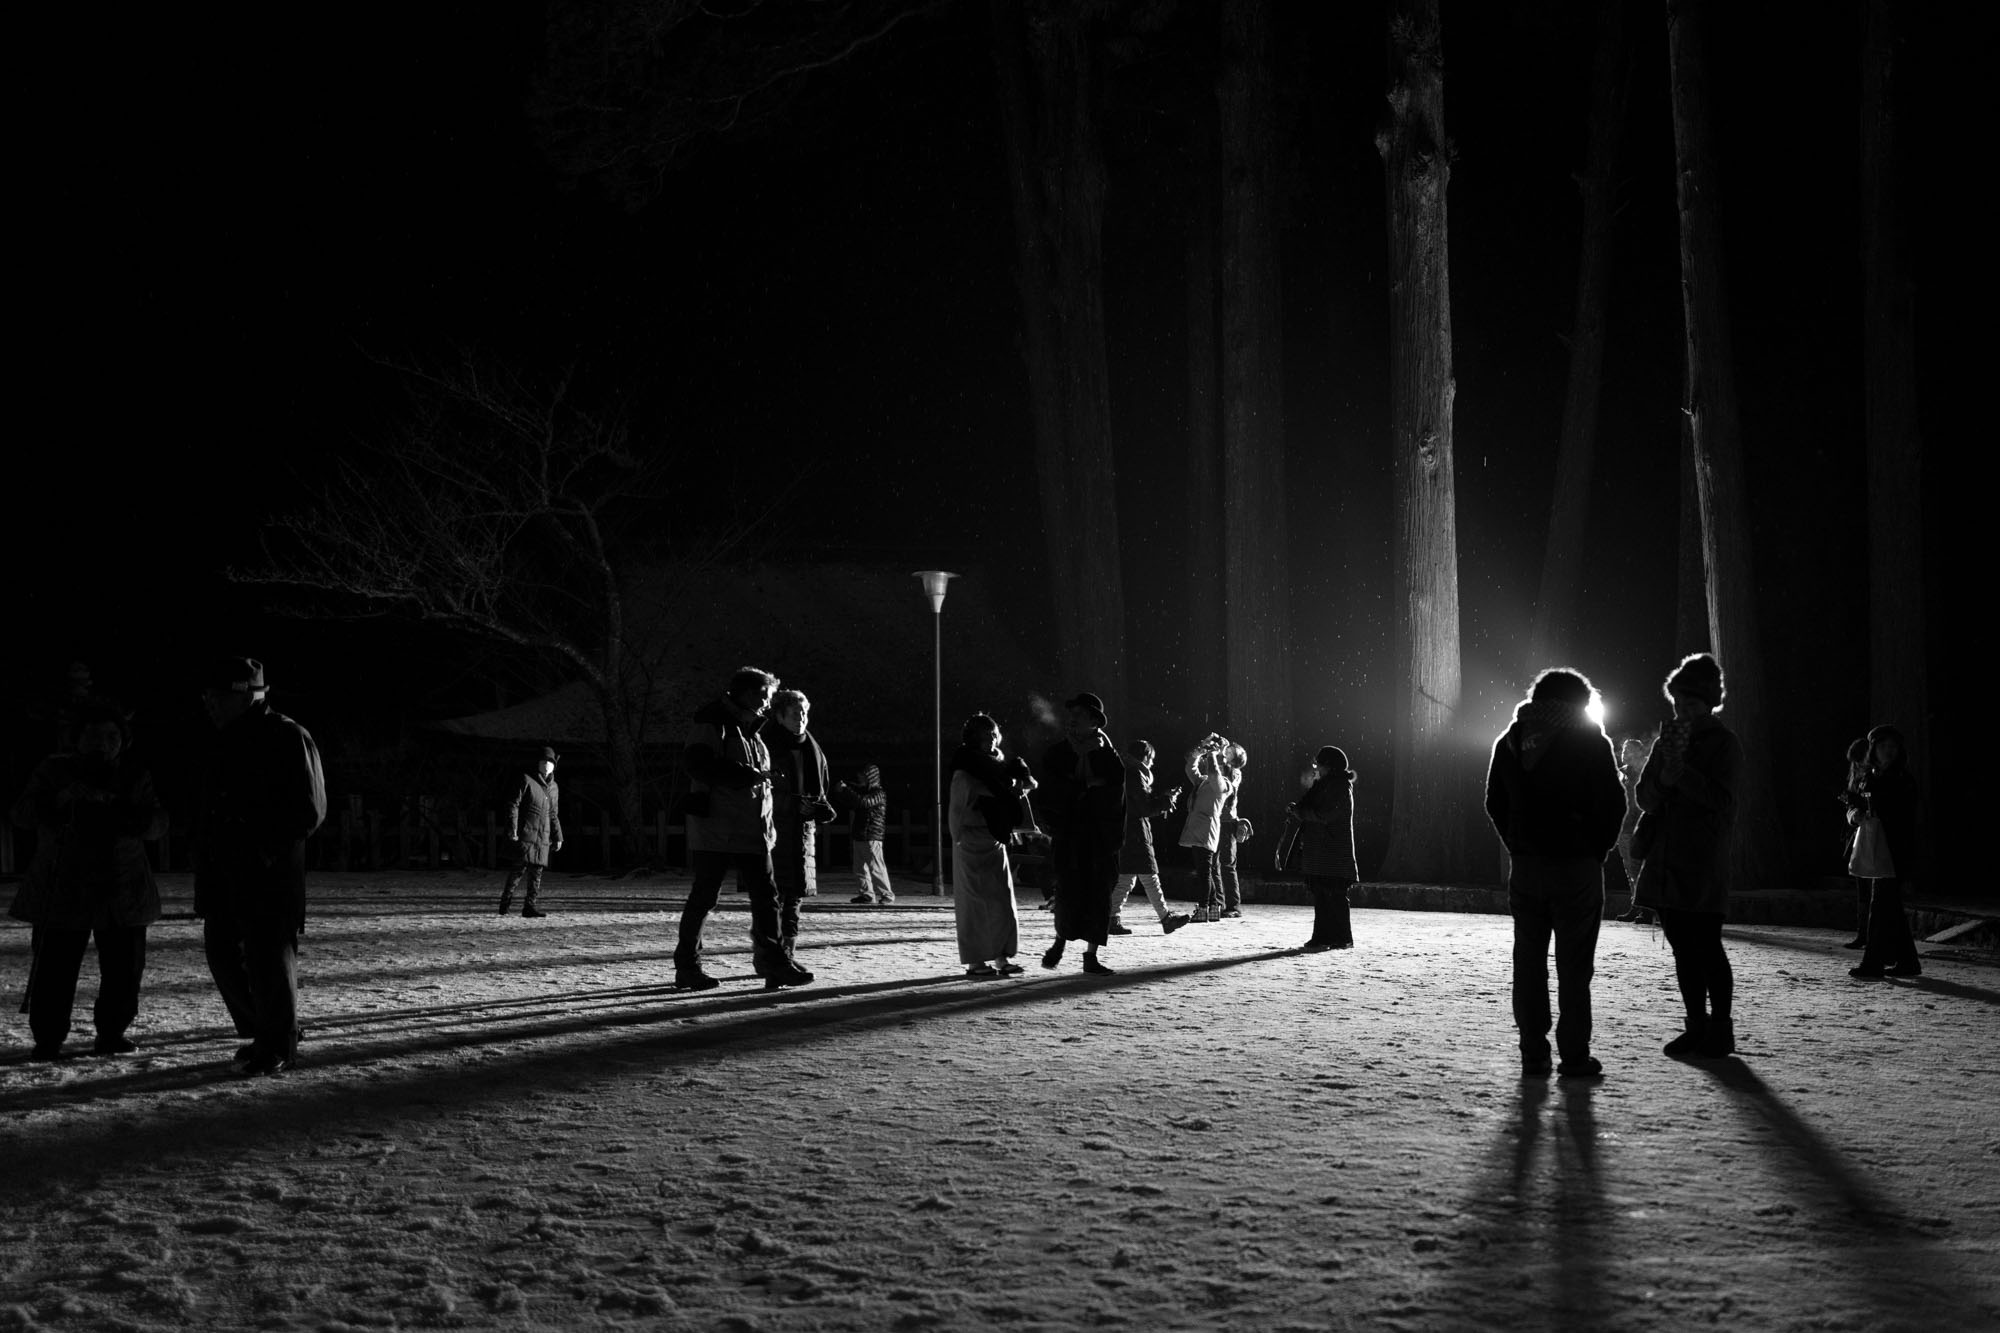 Winterwalk, Koyasan, cropped